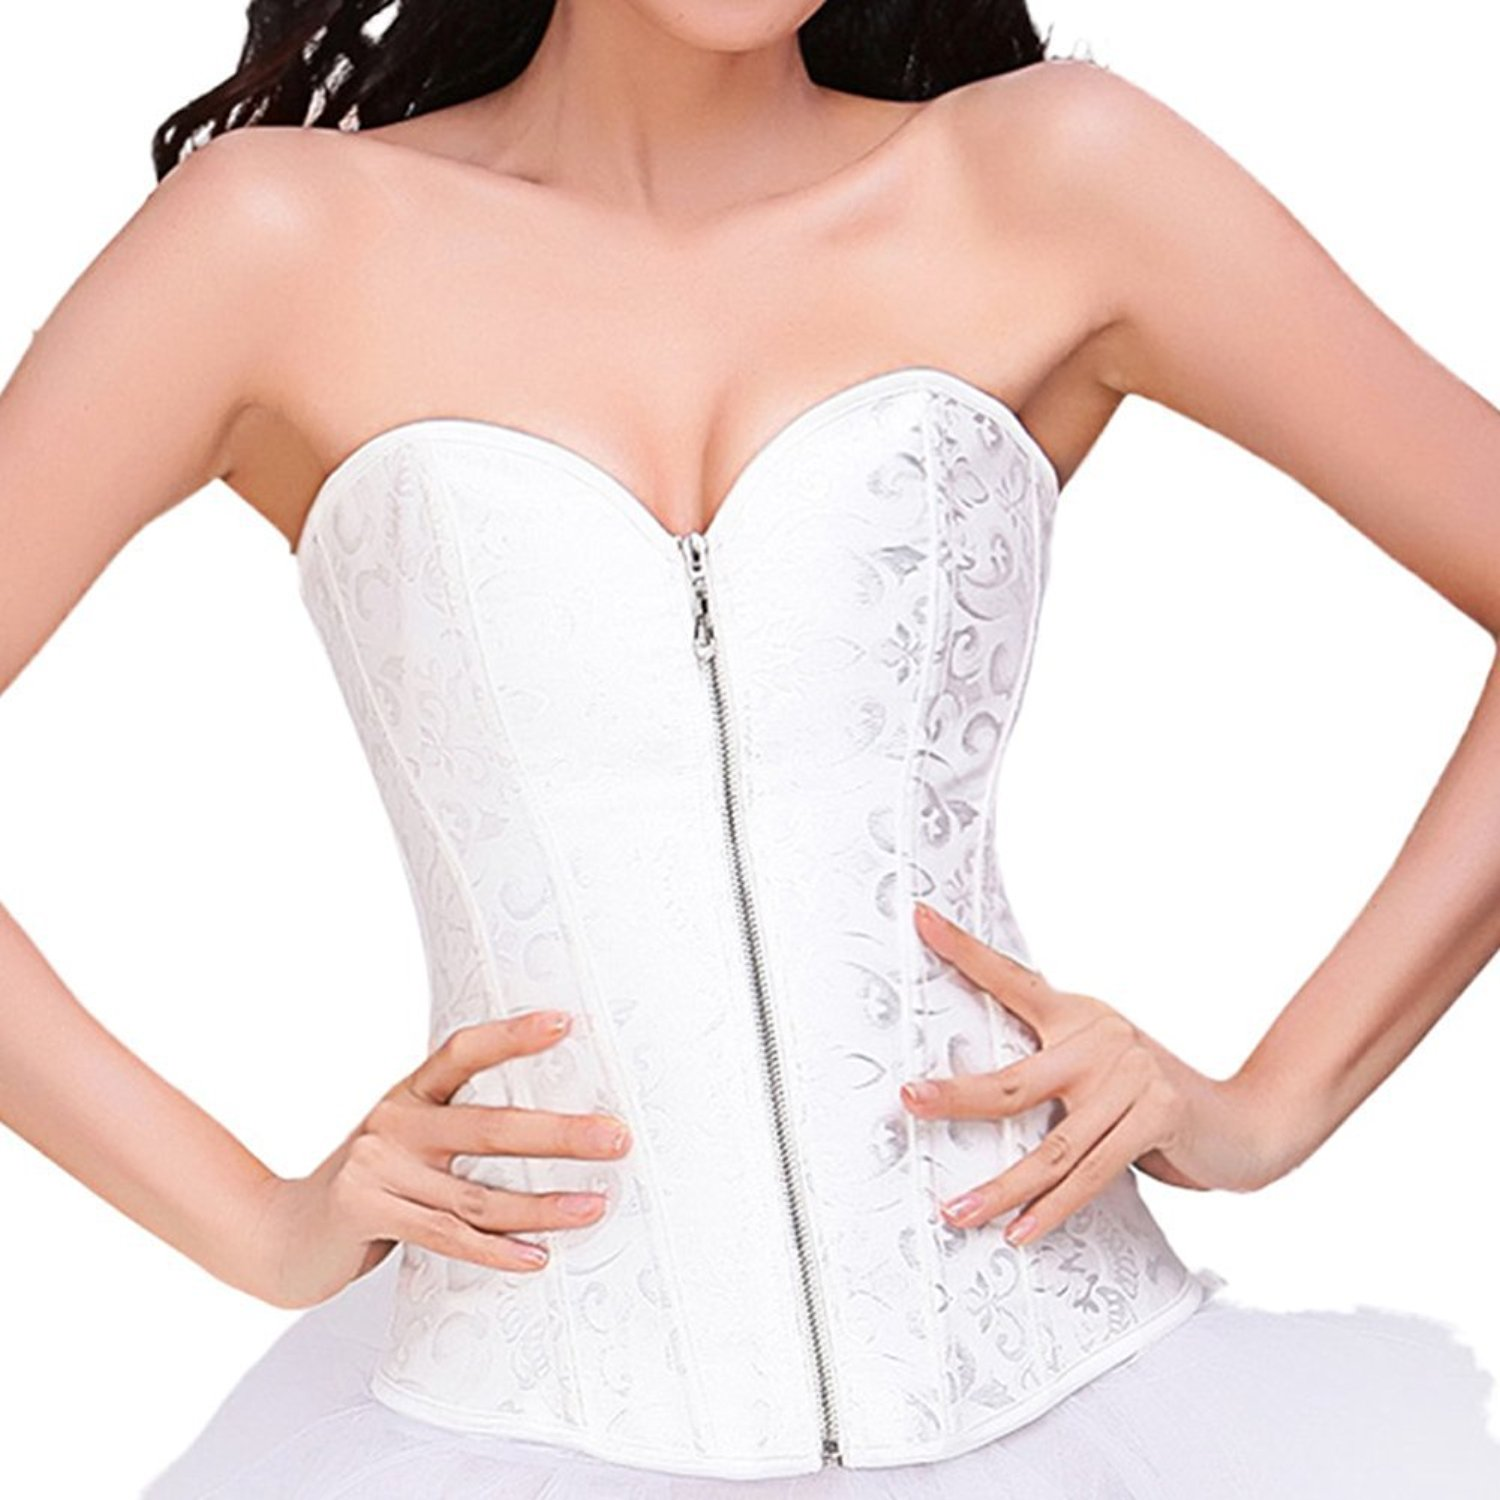 7e6bee7bb Get Quotations · Ya Lida Corset bridal lingerie shapewear abdomen care  thoracolumbar folder